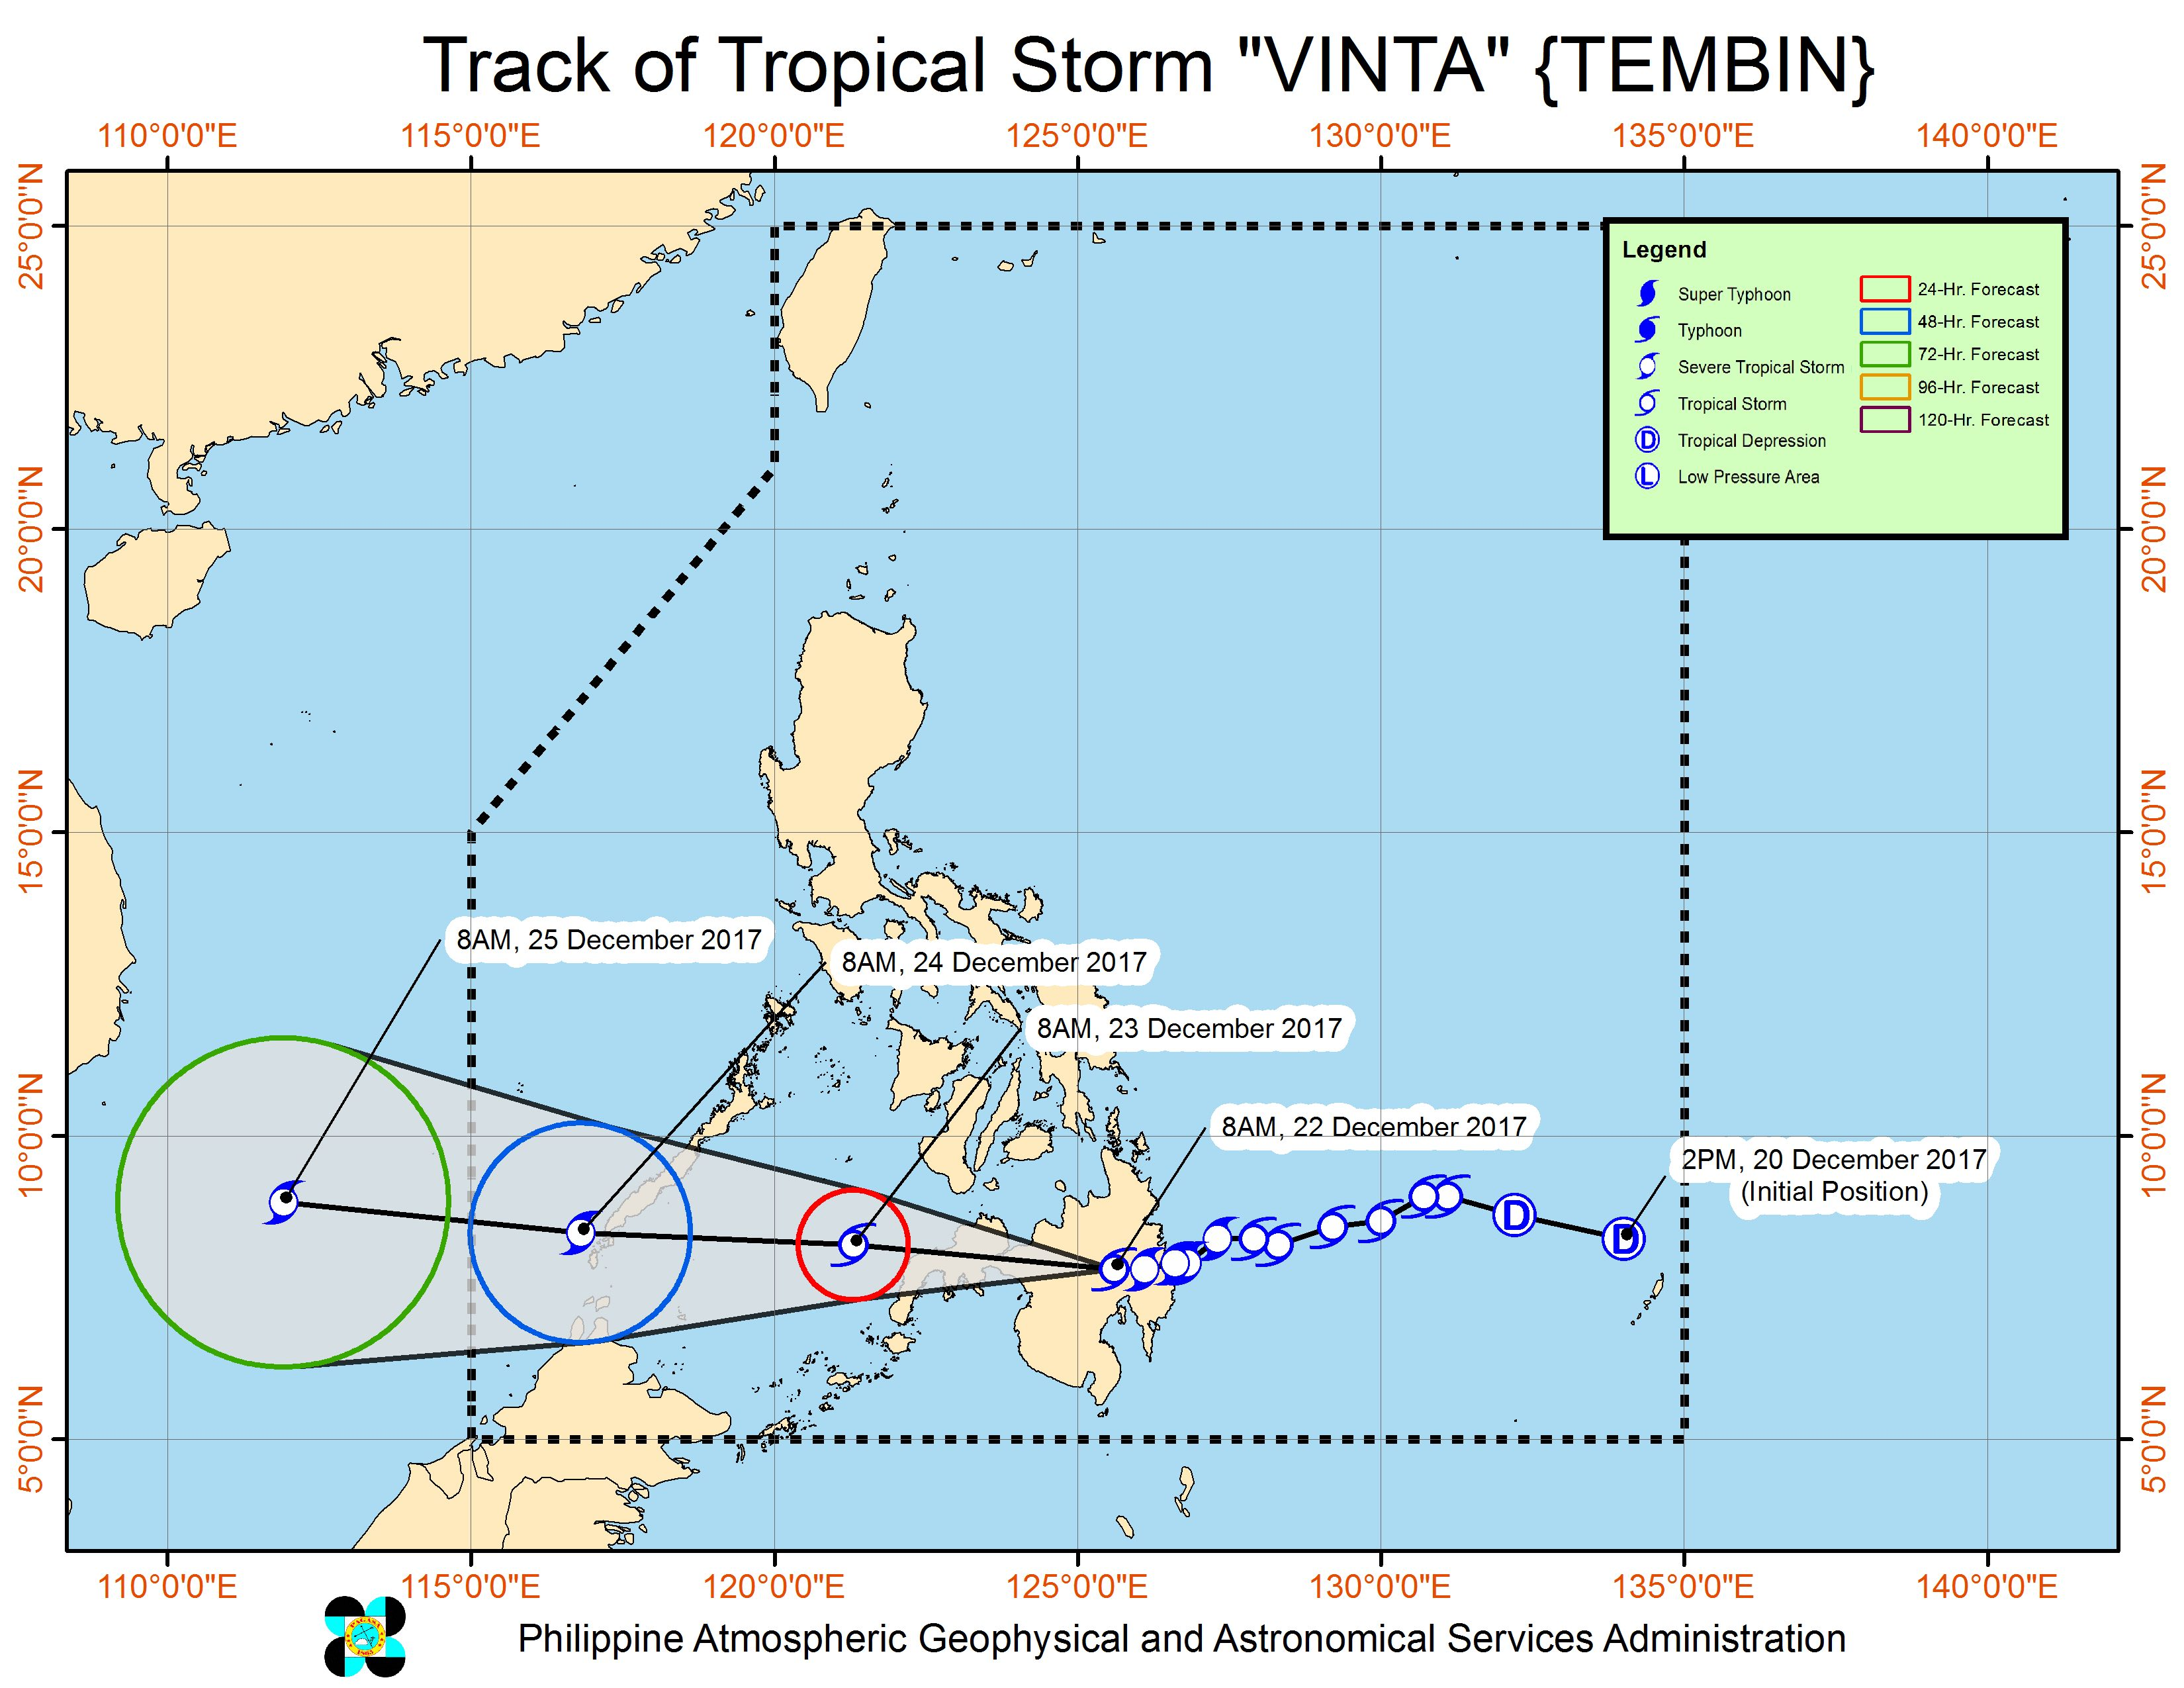 Forecast track of Tropical Storm Vinta as of December 22, 11 am. Image courtesy of PAGASA